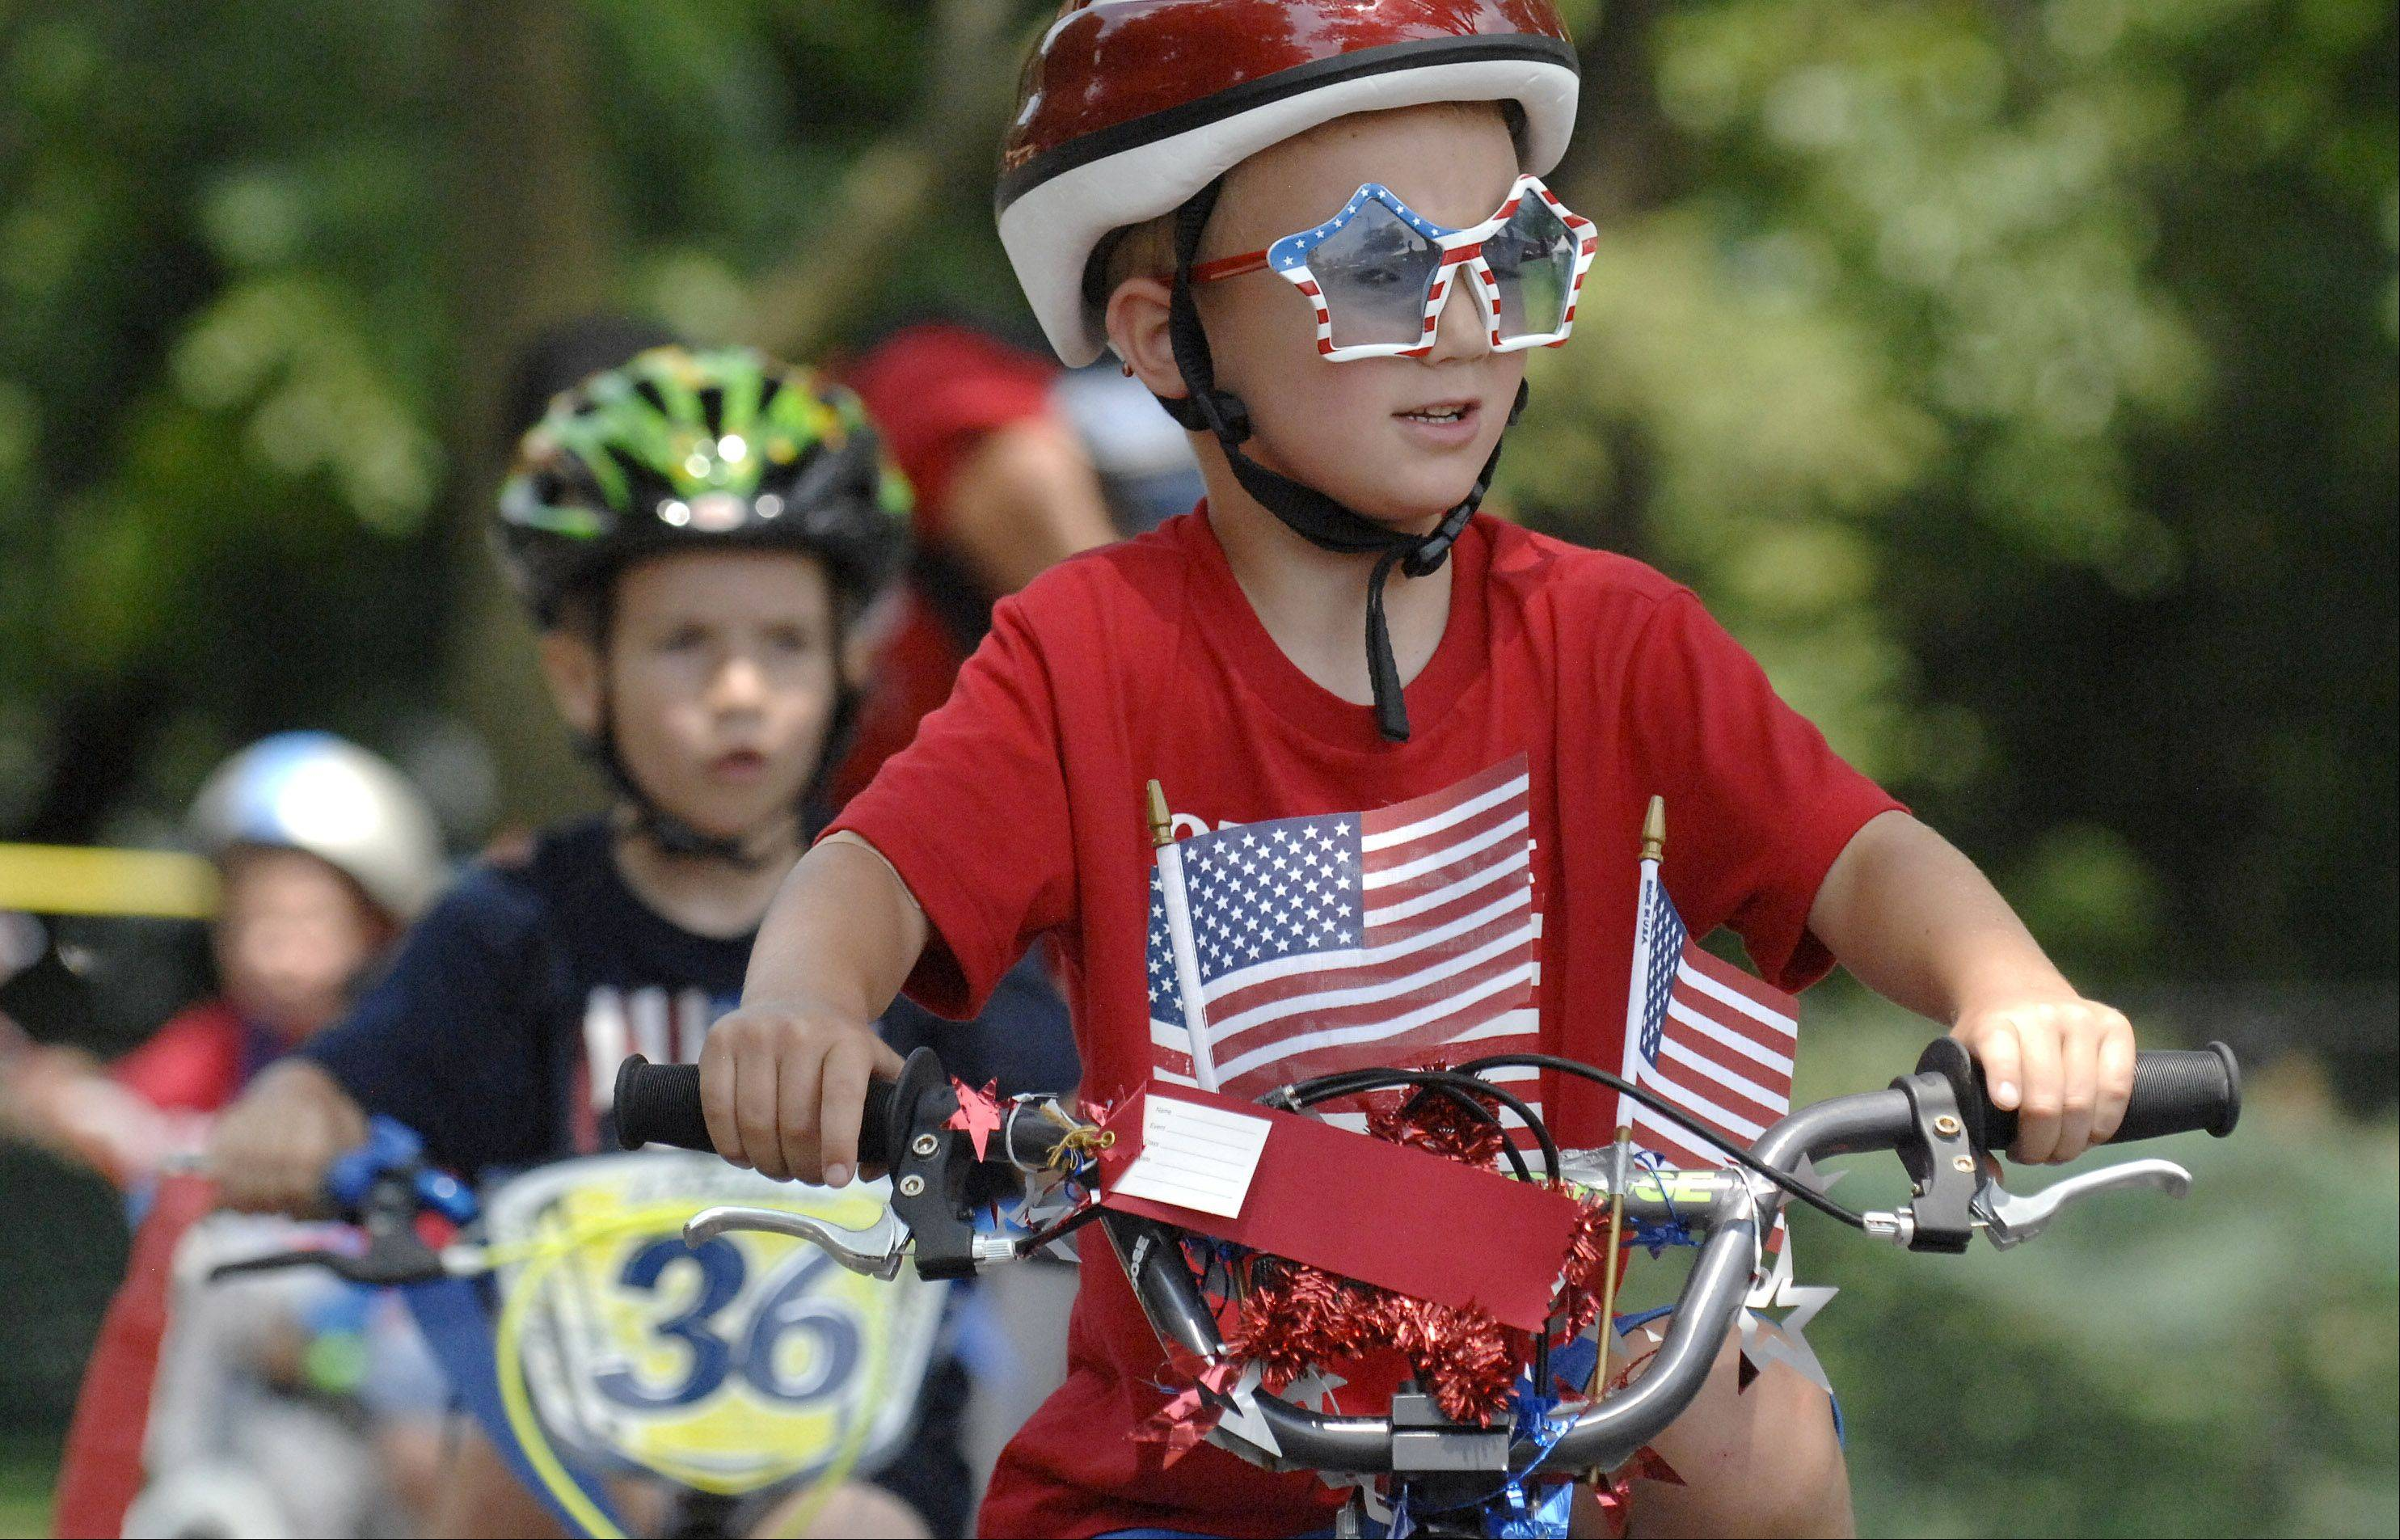 Charlie Carnes, 5, of Crystal Lake, shows off his patriotic side during a kids decorated bike parade at the Lakeside Festival. Charlie's brother, Ben, 8, also participated in the ride. The festival is running through the weekend at Lakeside Legacy Arts Park.